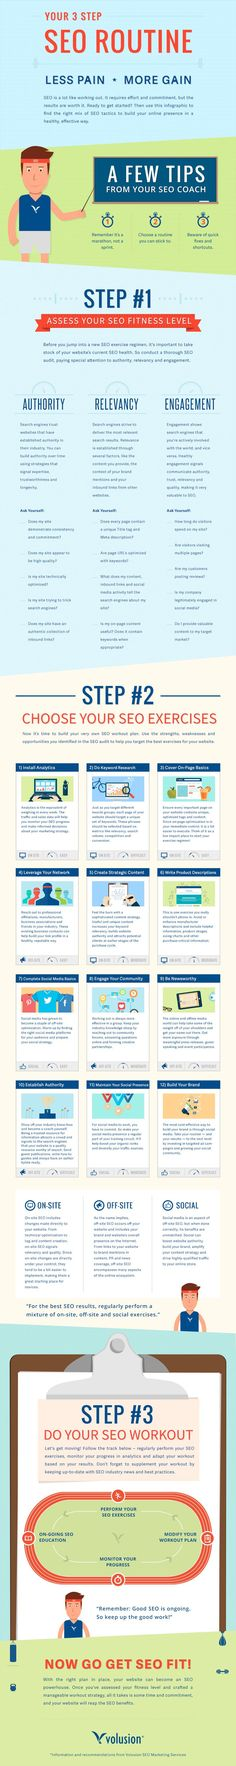 Find the right mix of SEO tactics to build your online presence in a healthy, effective way. Use this infographic. #searchengineoptimizationaudit,